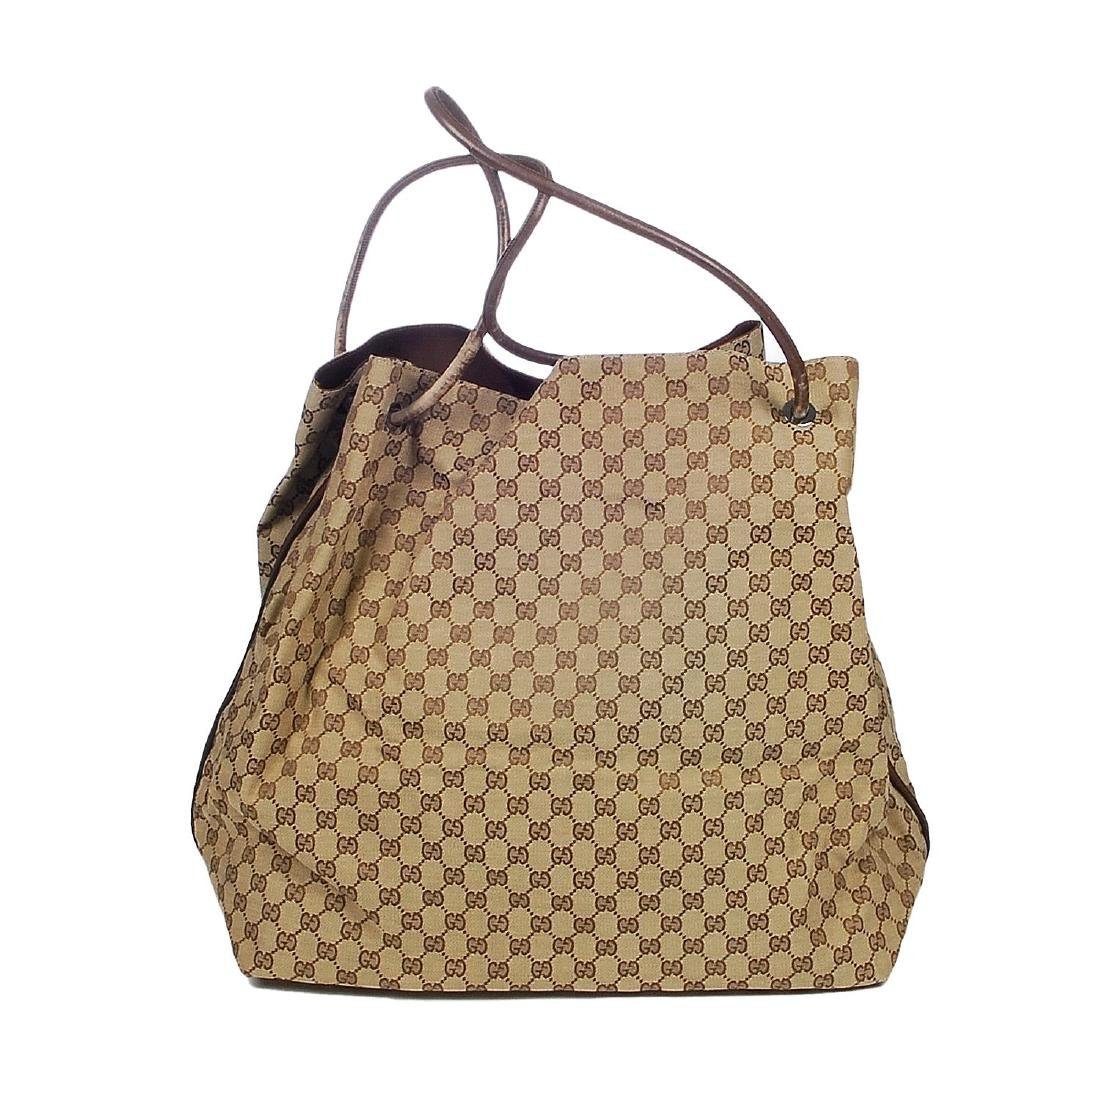 GUCCI - a large GG canvas handbag. Crafted from maker's